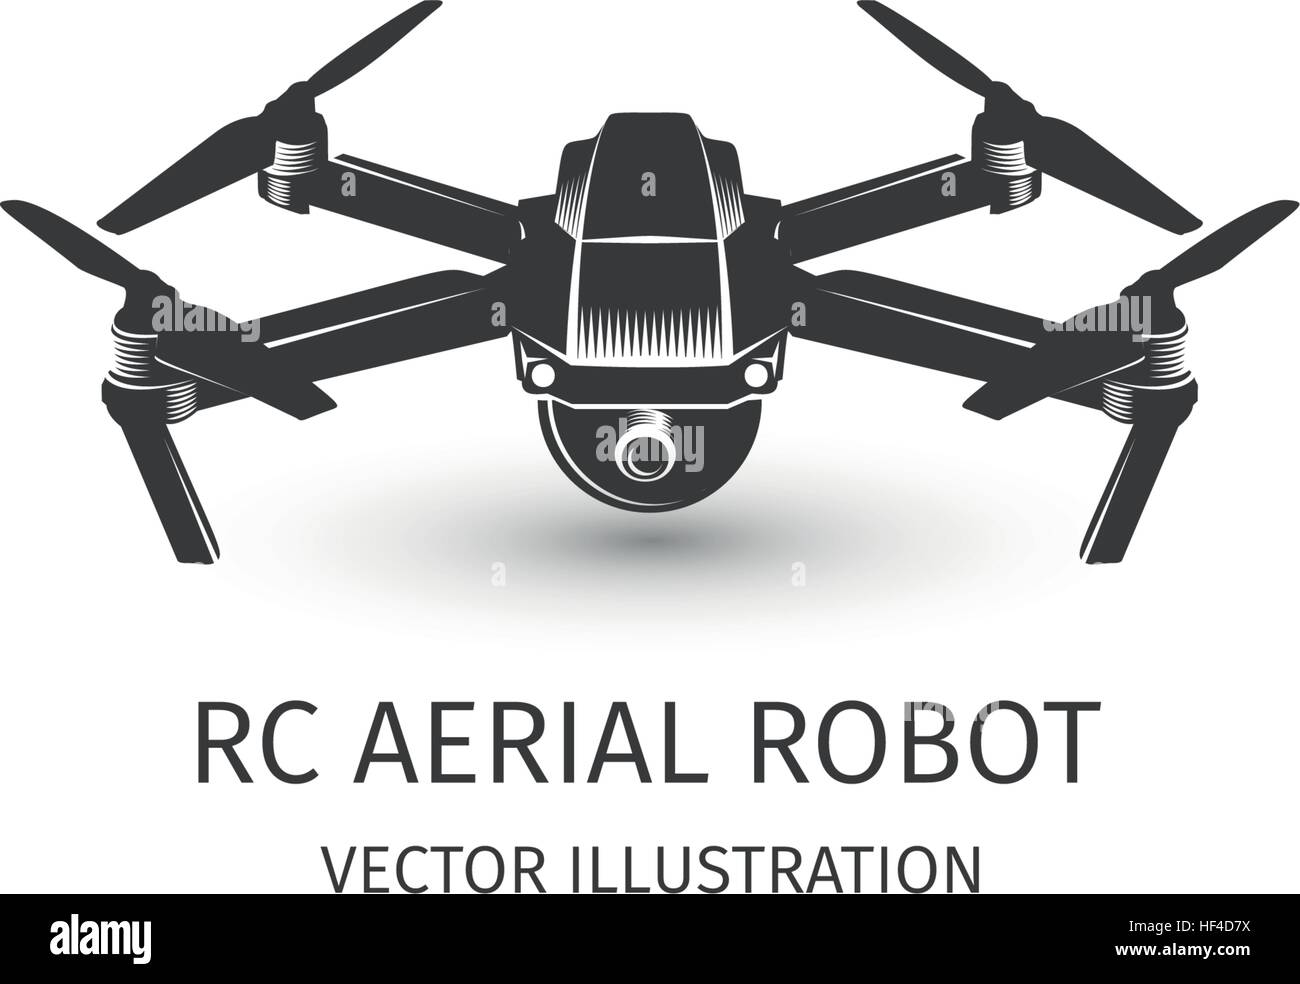 Isolated rc drone logo on white. UAV technology logotype. Unmanned aerial vehicle icon. Remote control device sign. - Stock Image